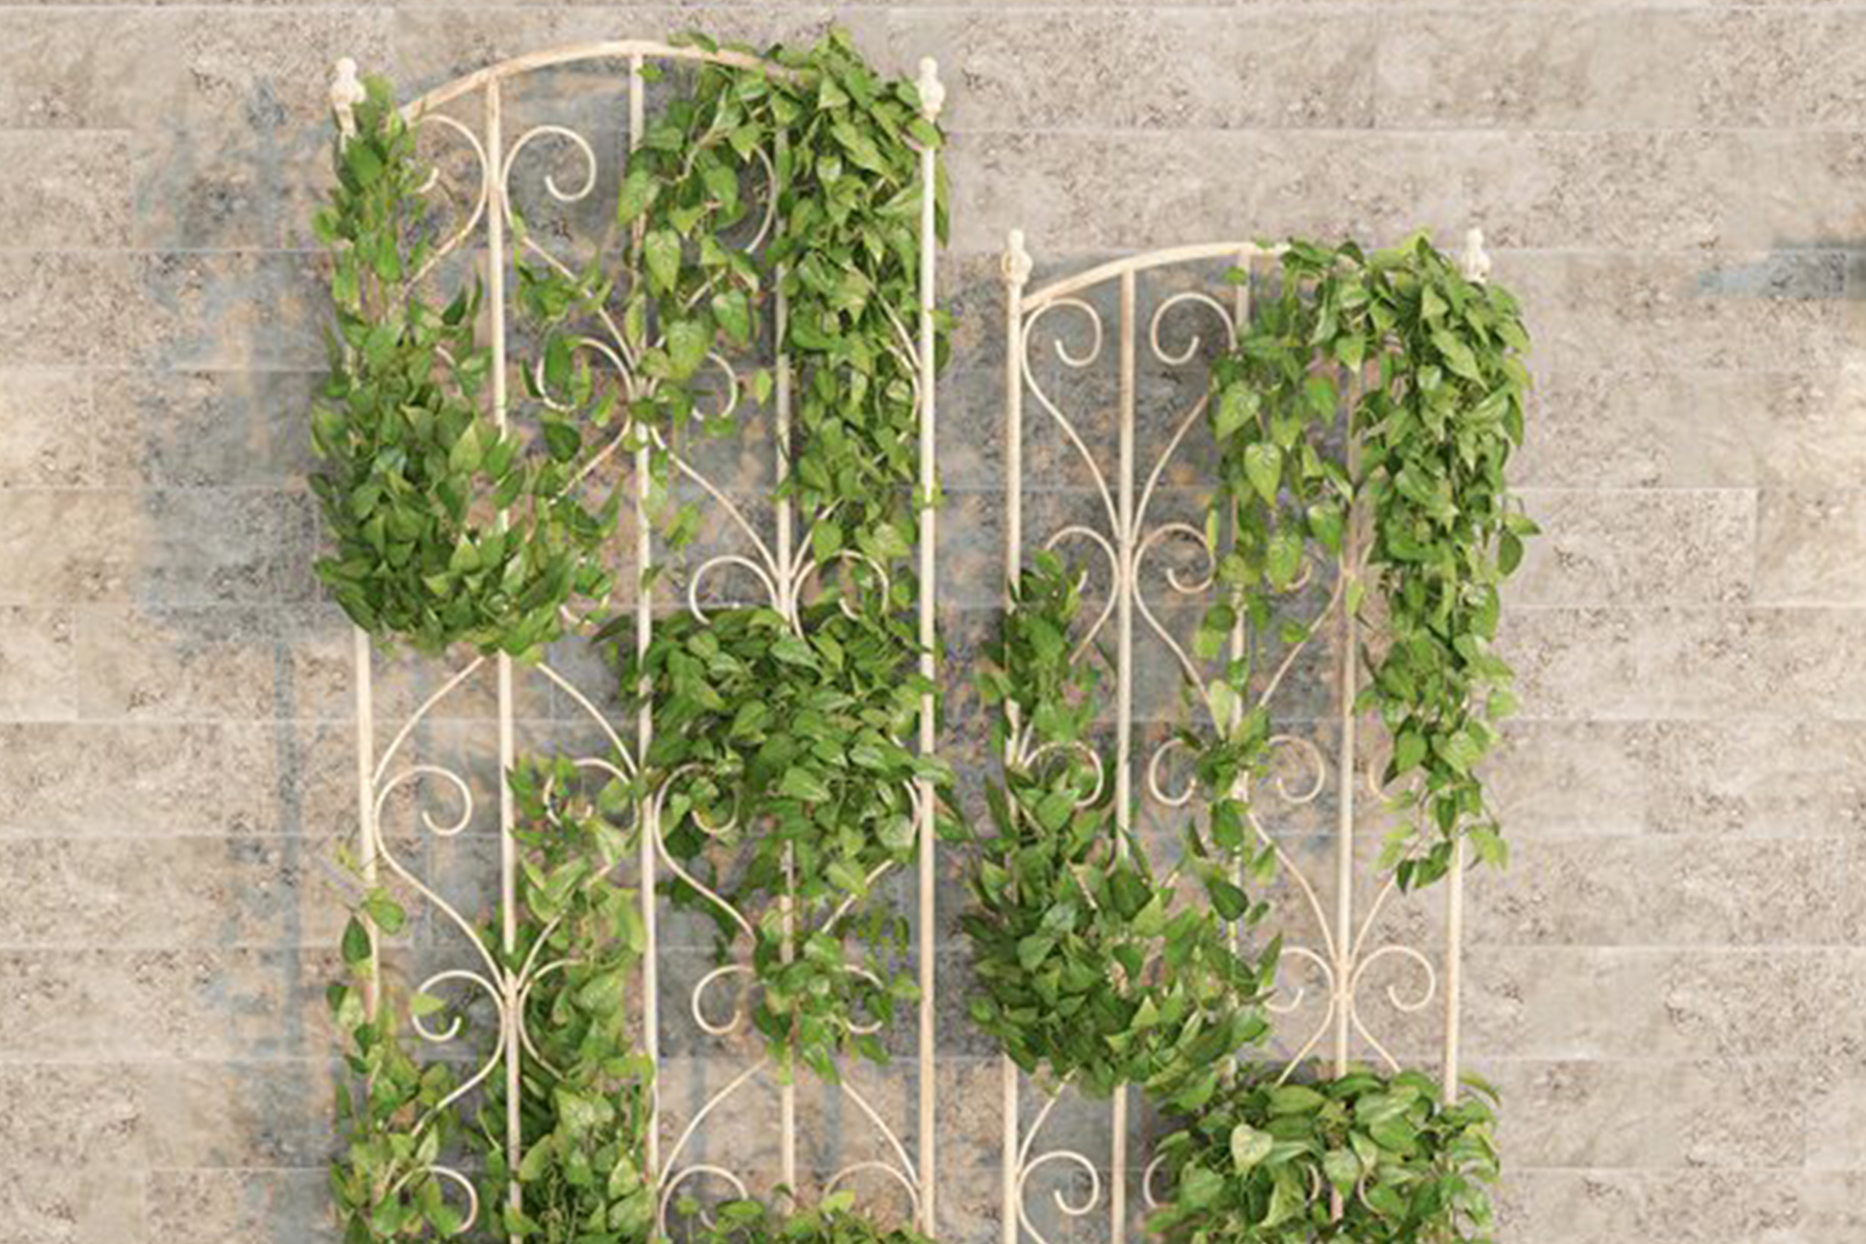 Climbing Plants Steel Arched Trellis Set